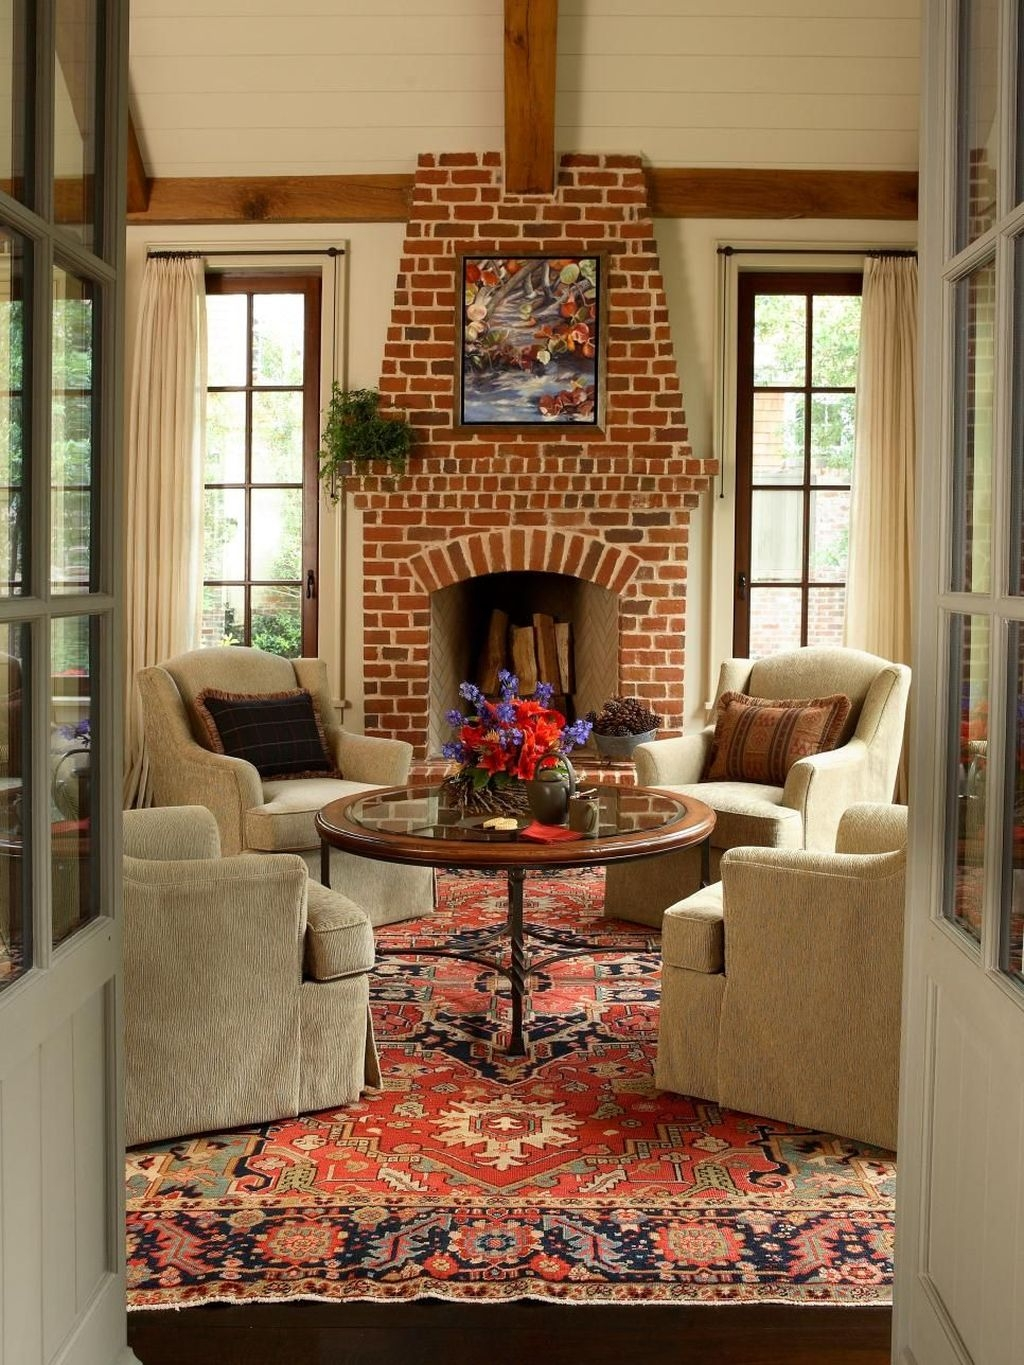 Modern Brick Fireplace Decorations Ideas For Living Room21